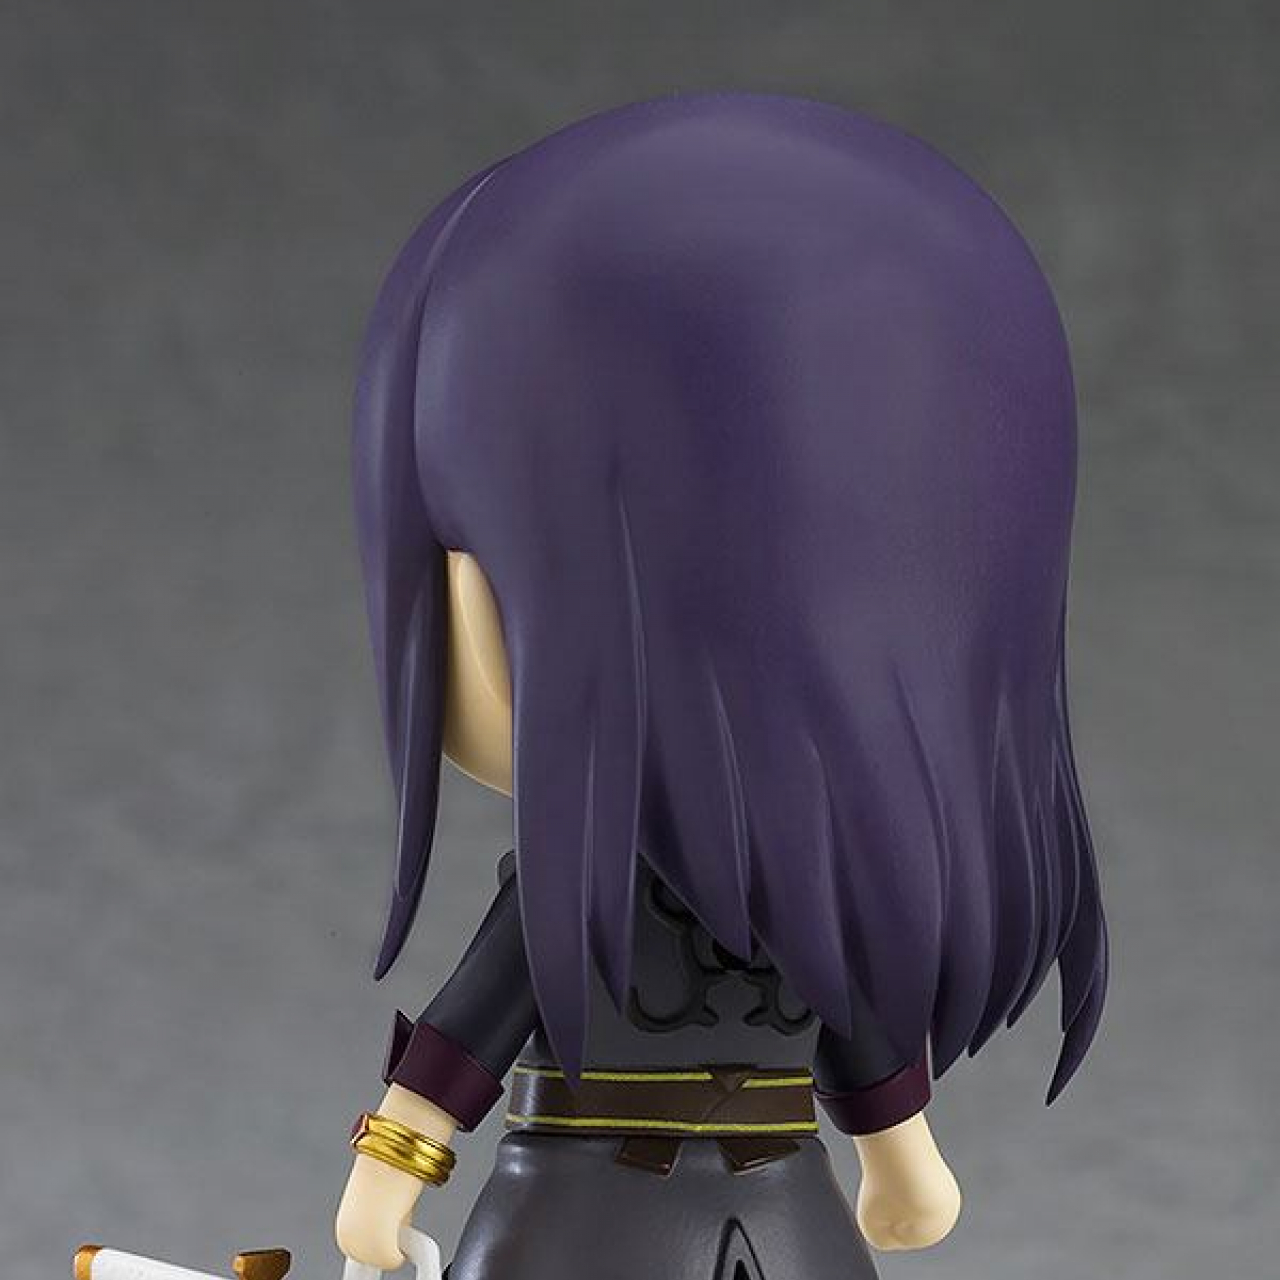 Tales of Vesperia Nendoroid Action Figure Yuri Lowell 10 cm